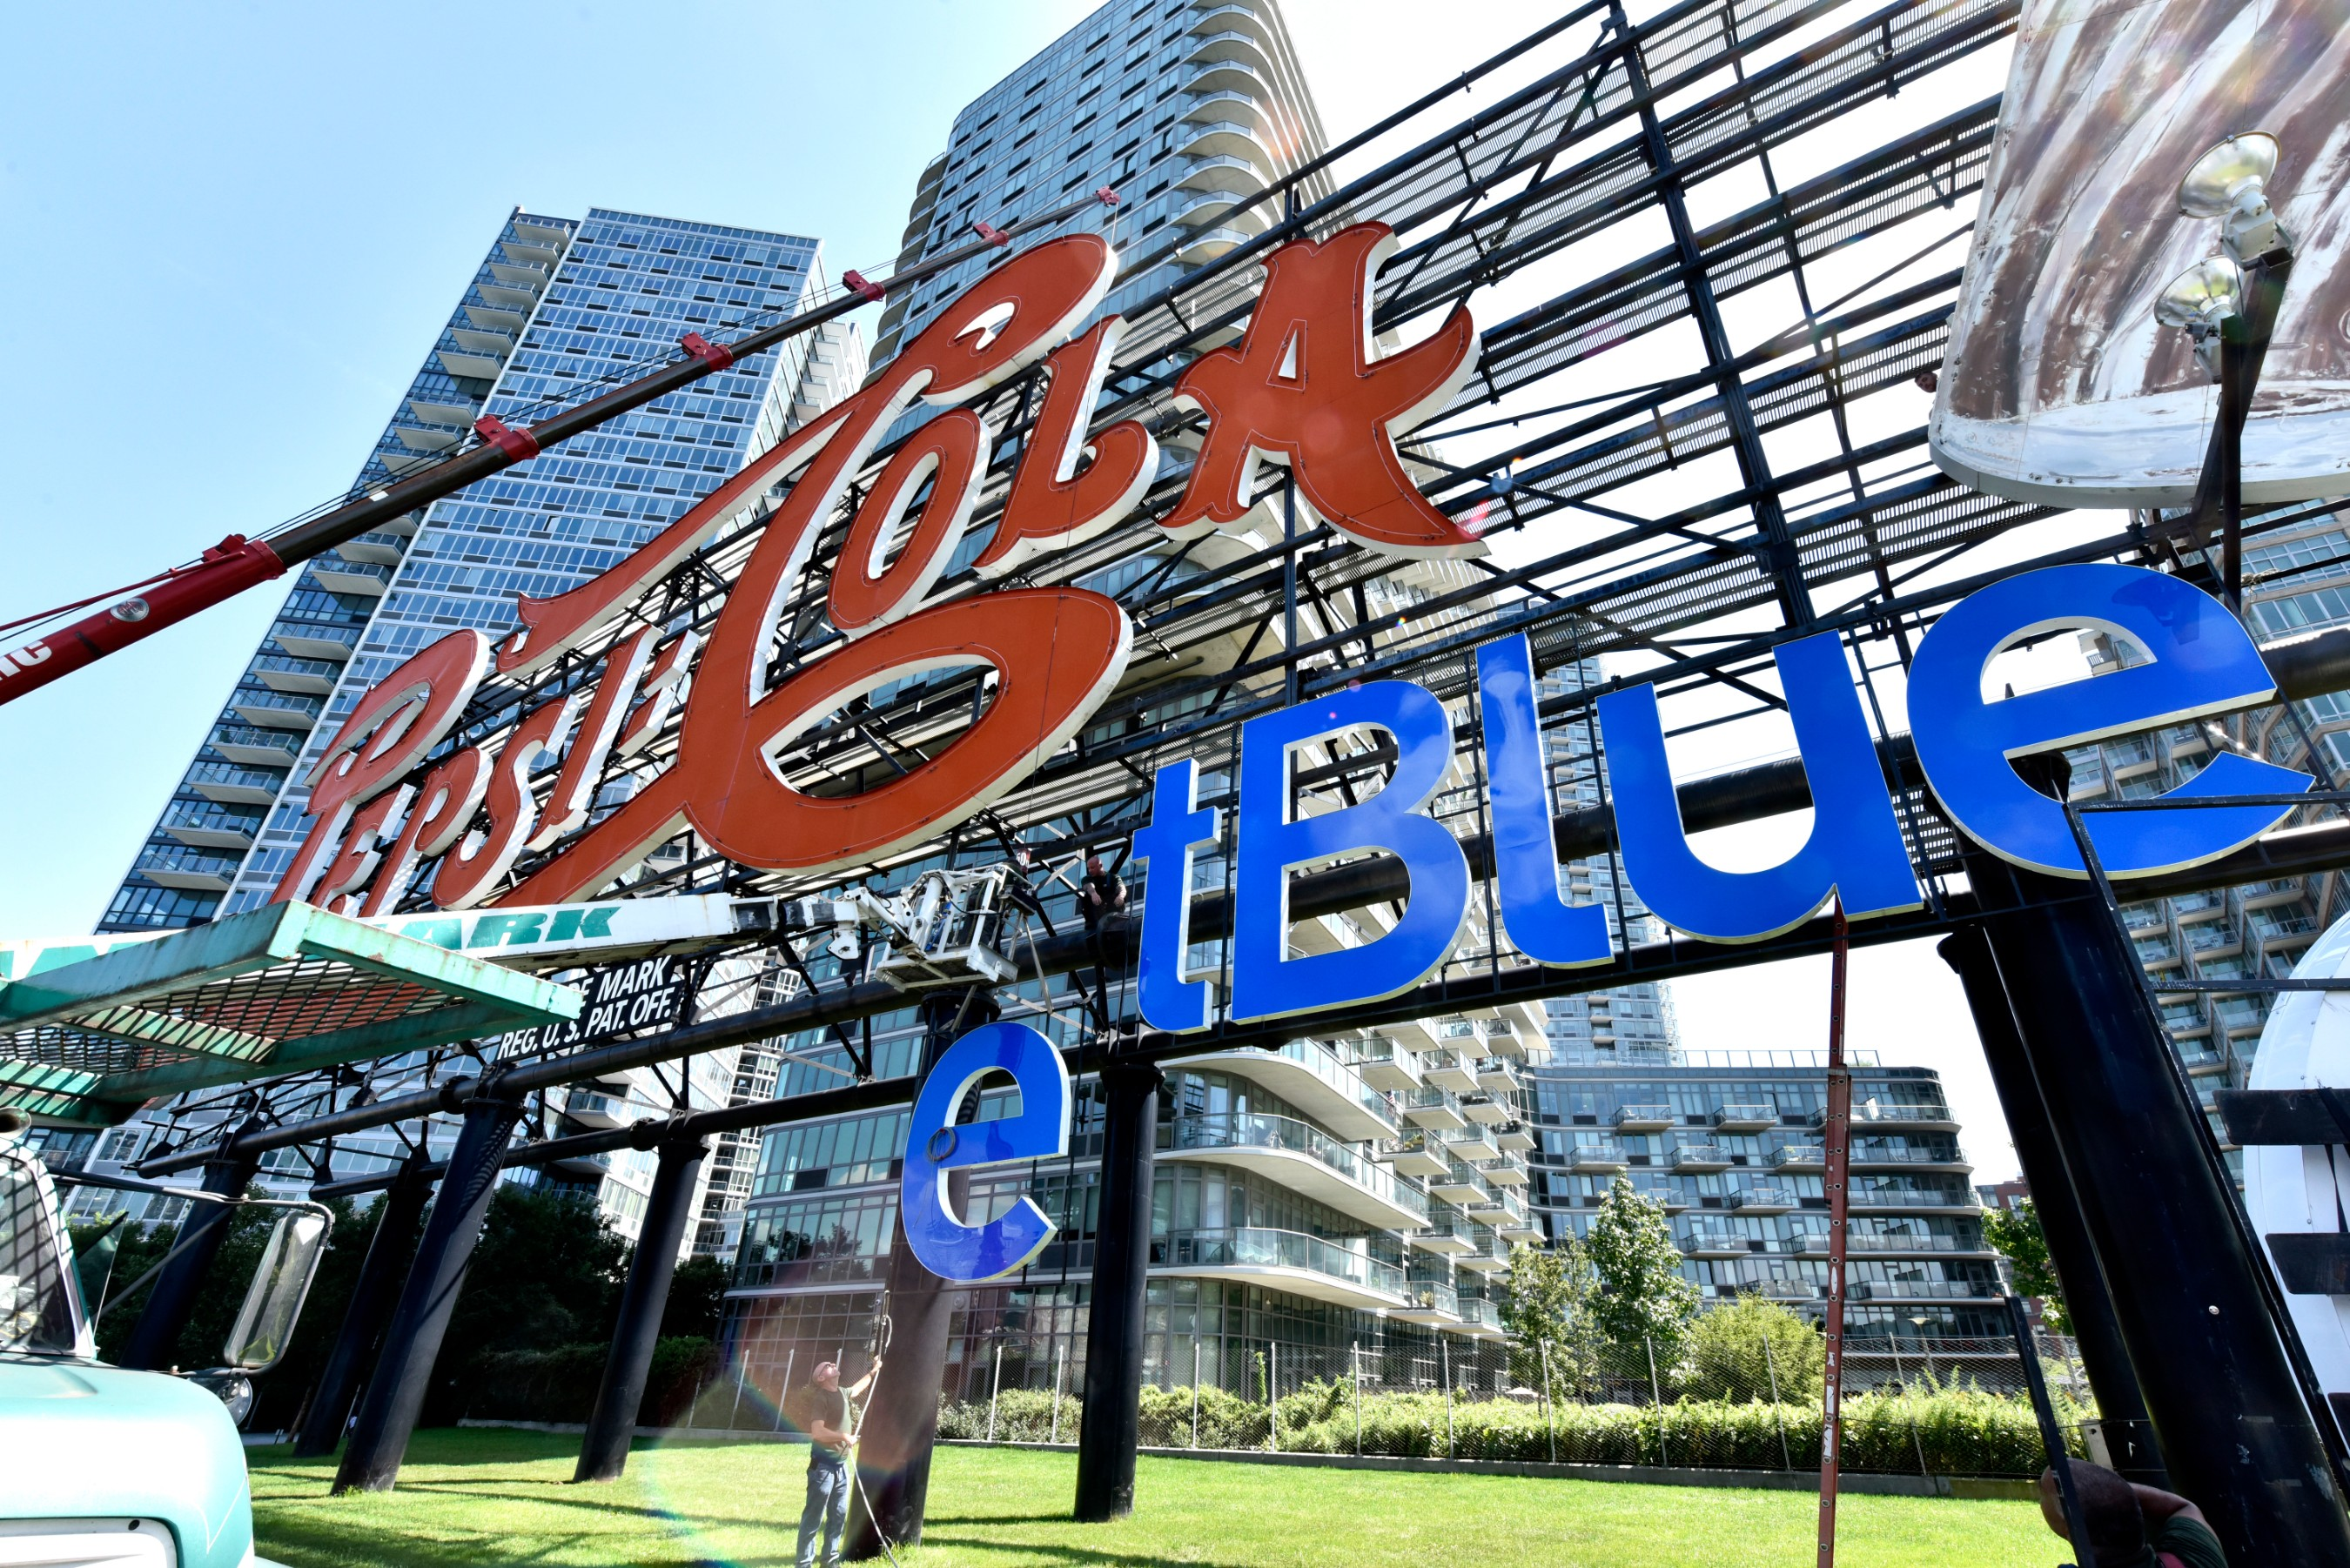 Installation began on the temporary JetBlue signage placed on the landmark Pepsi-Cola sign in Long Island City, New York on August 20, 2019. The updated sign will commemorate the new partnership between PepsiCo and JetBlue.